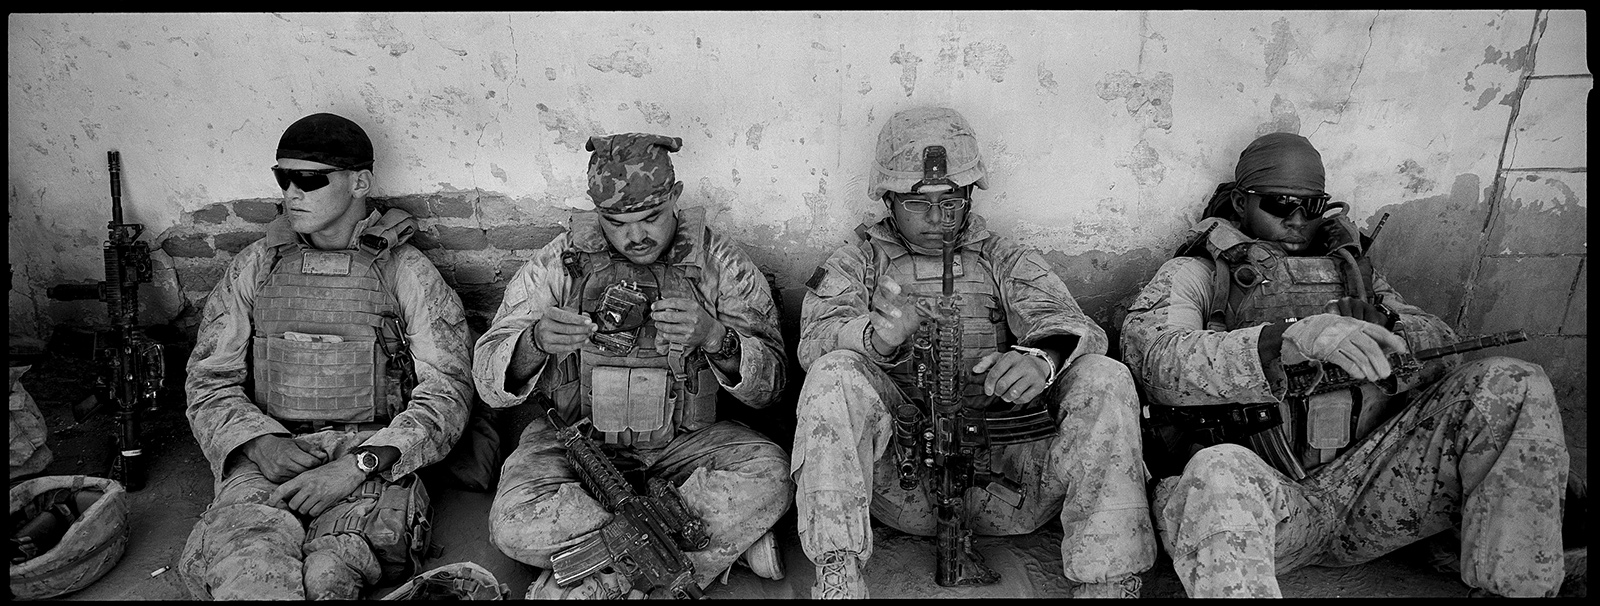 US Marines about to go on patrol in Khan Neshin, Helmand province, Afghanistan, 2009; photograph by Stephen Dupont from his book Generation AK: The Afghanistan Wars 1993–2012, published last fall by Steidl